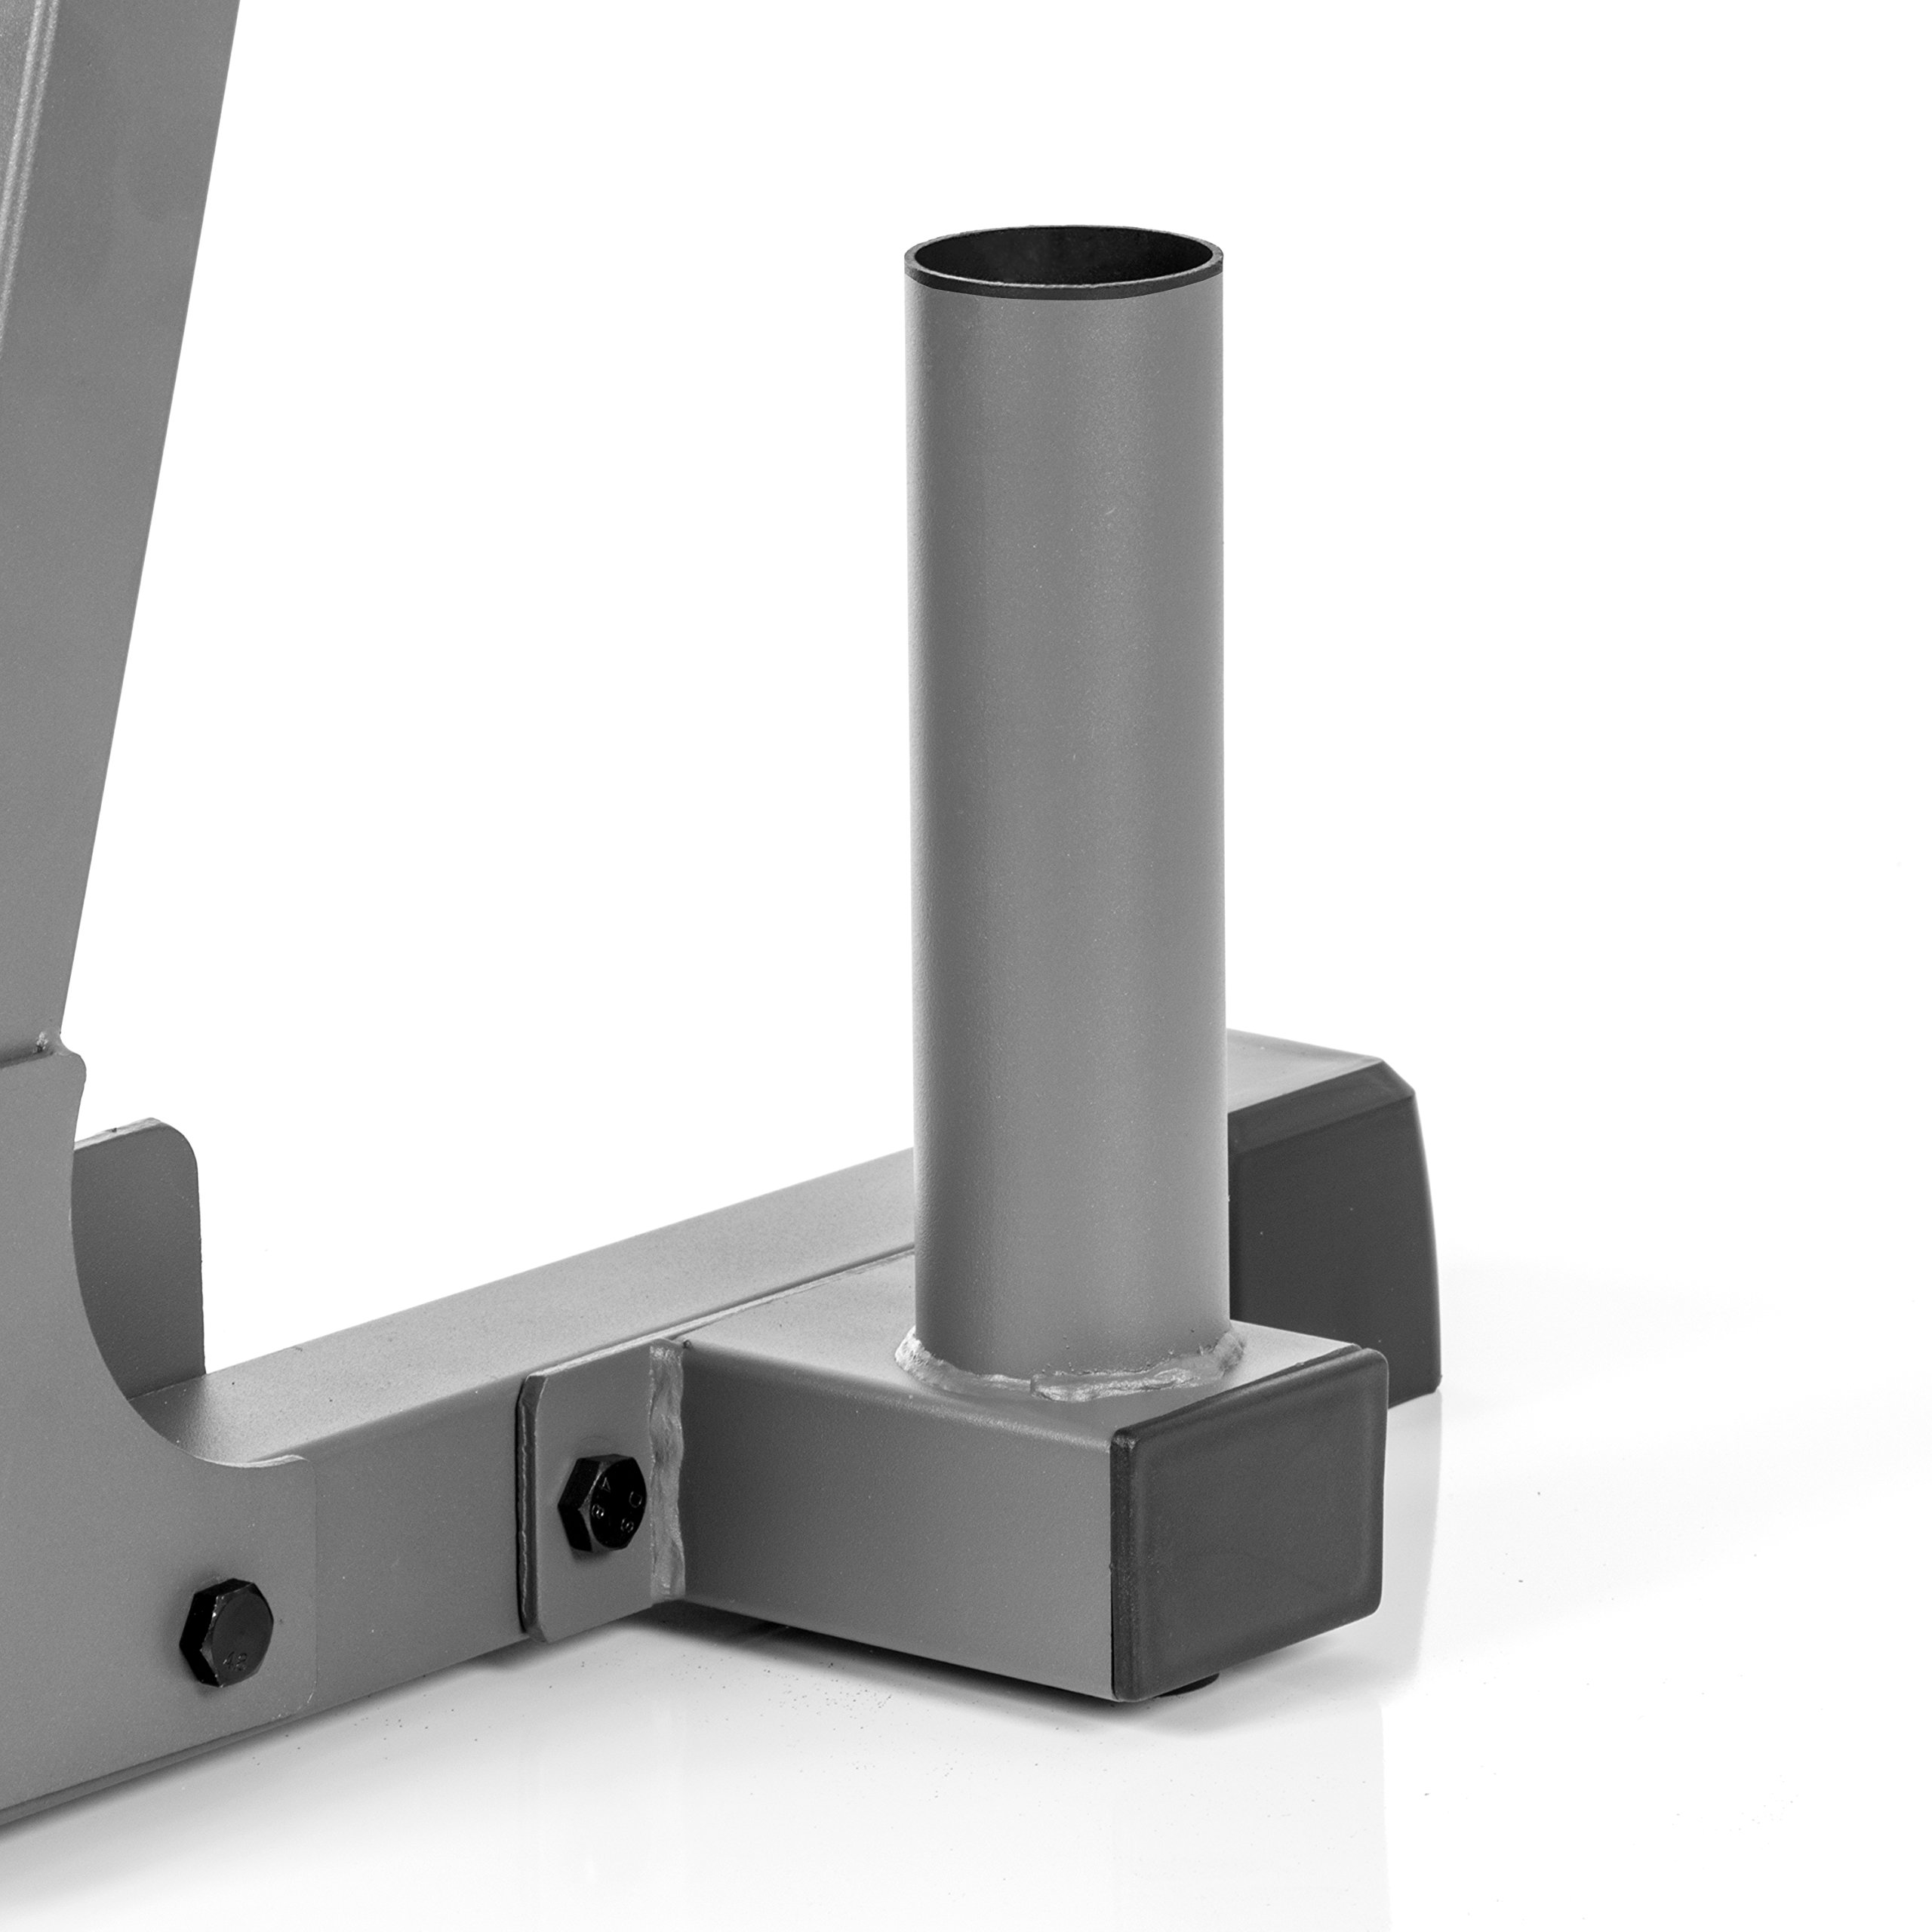 XMark All-in-One Dumbbell Rack, Plate Weight Storage and Dual Vertical Bar Holder, Design Patent Pending by XMark (Image #4)